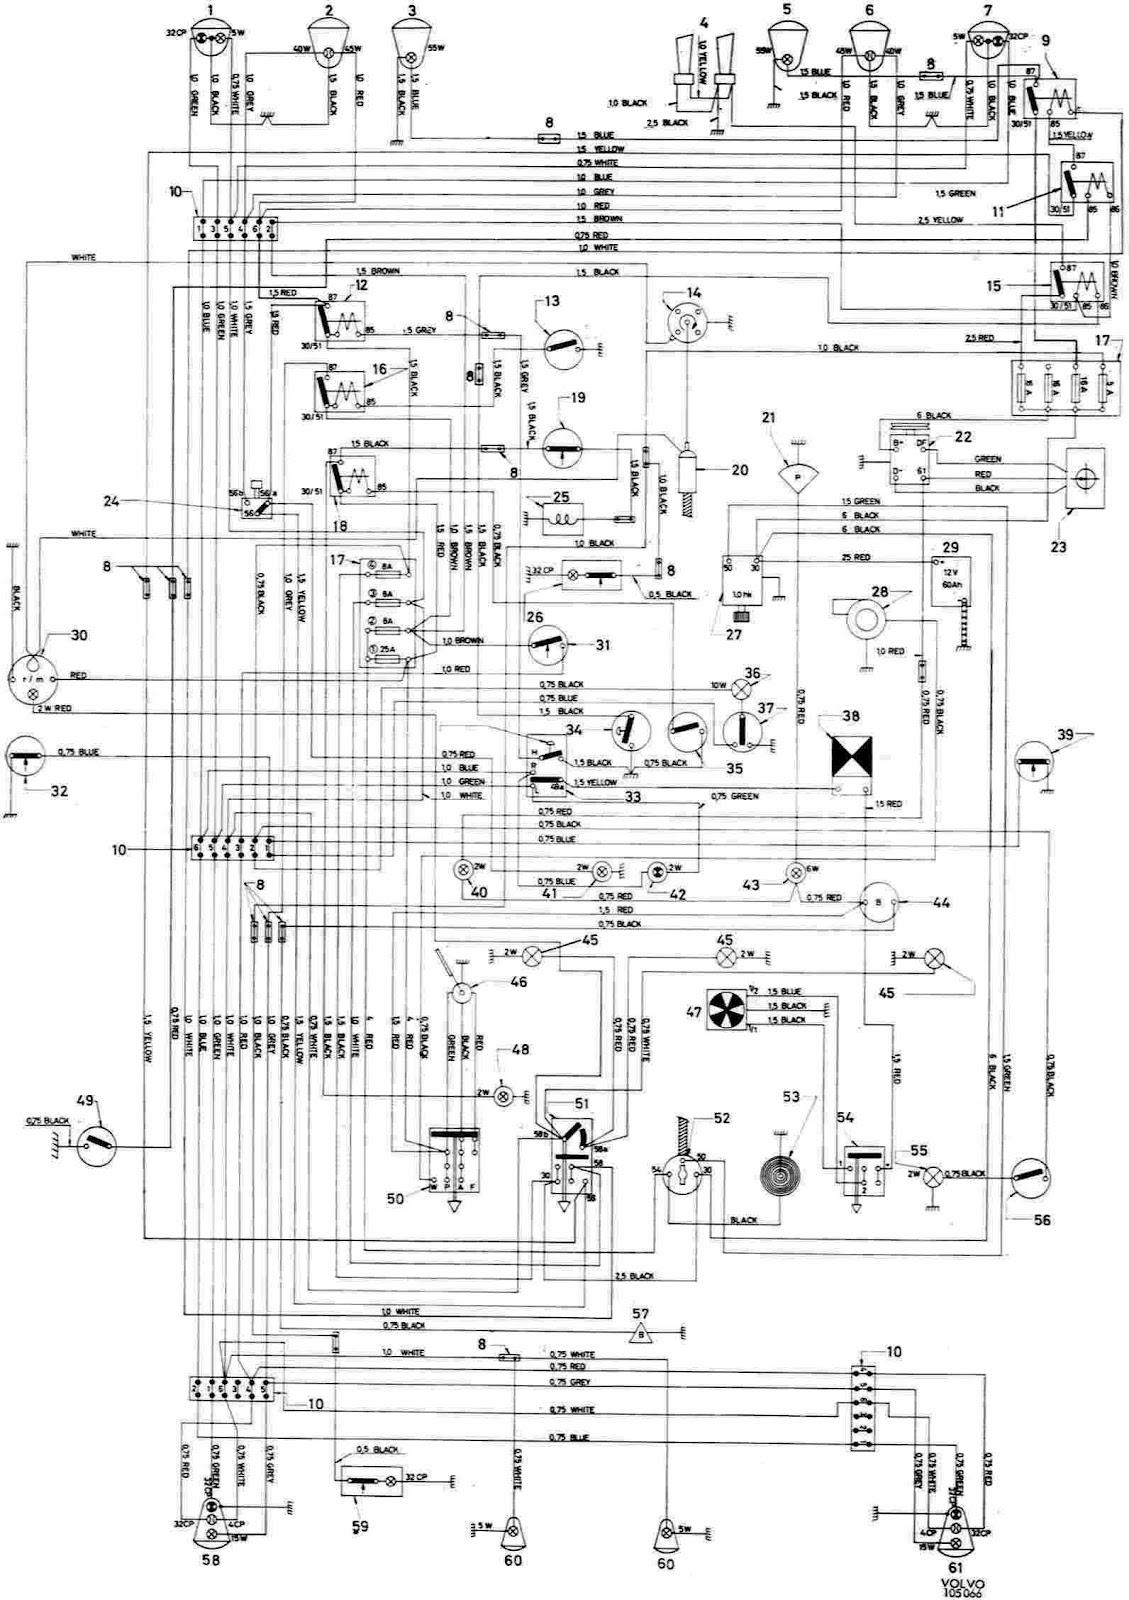 Volvo+123+GT+Complete+Wiring+Diagram 2005 volvo s40 wiring diagram volvo s40 steering diagram \u2022 wiring volvo c70 2001 wiring diagram at gsmx.co